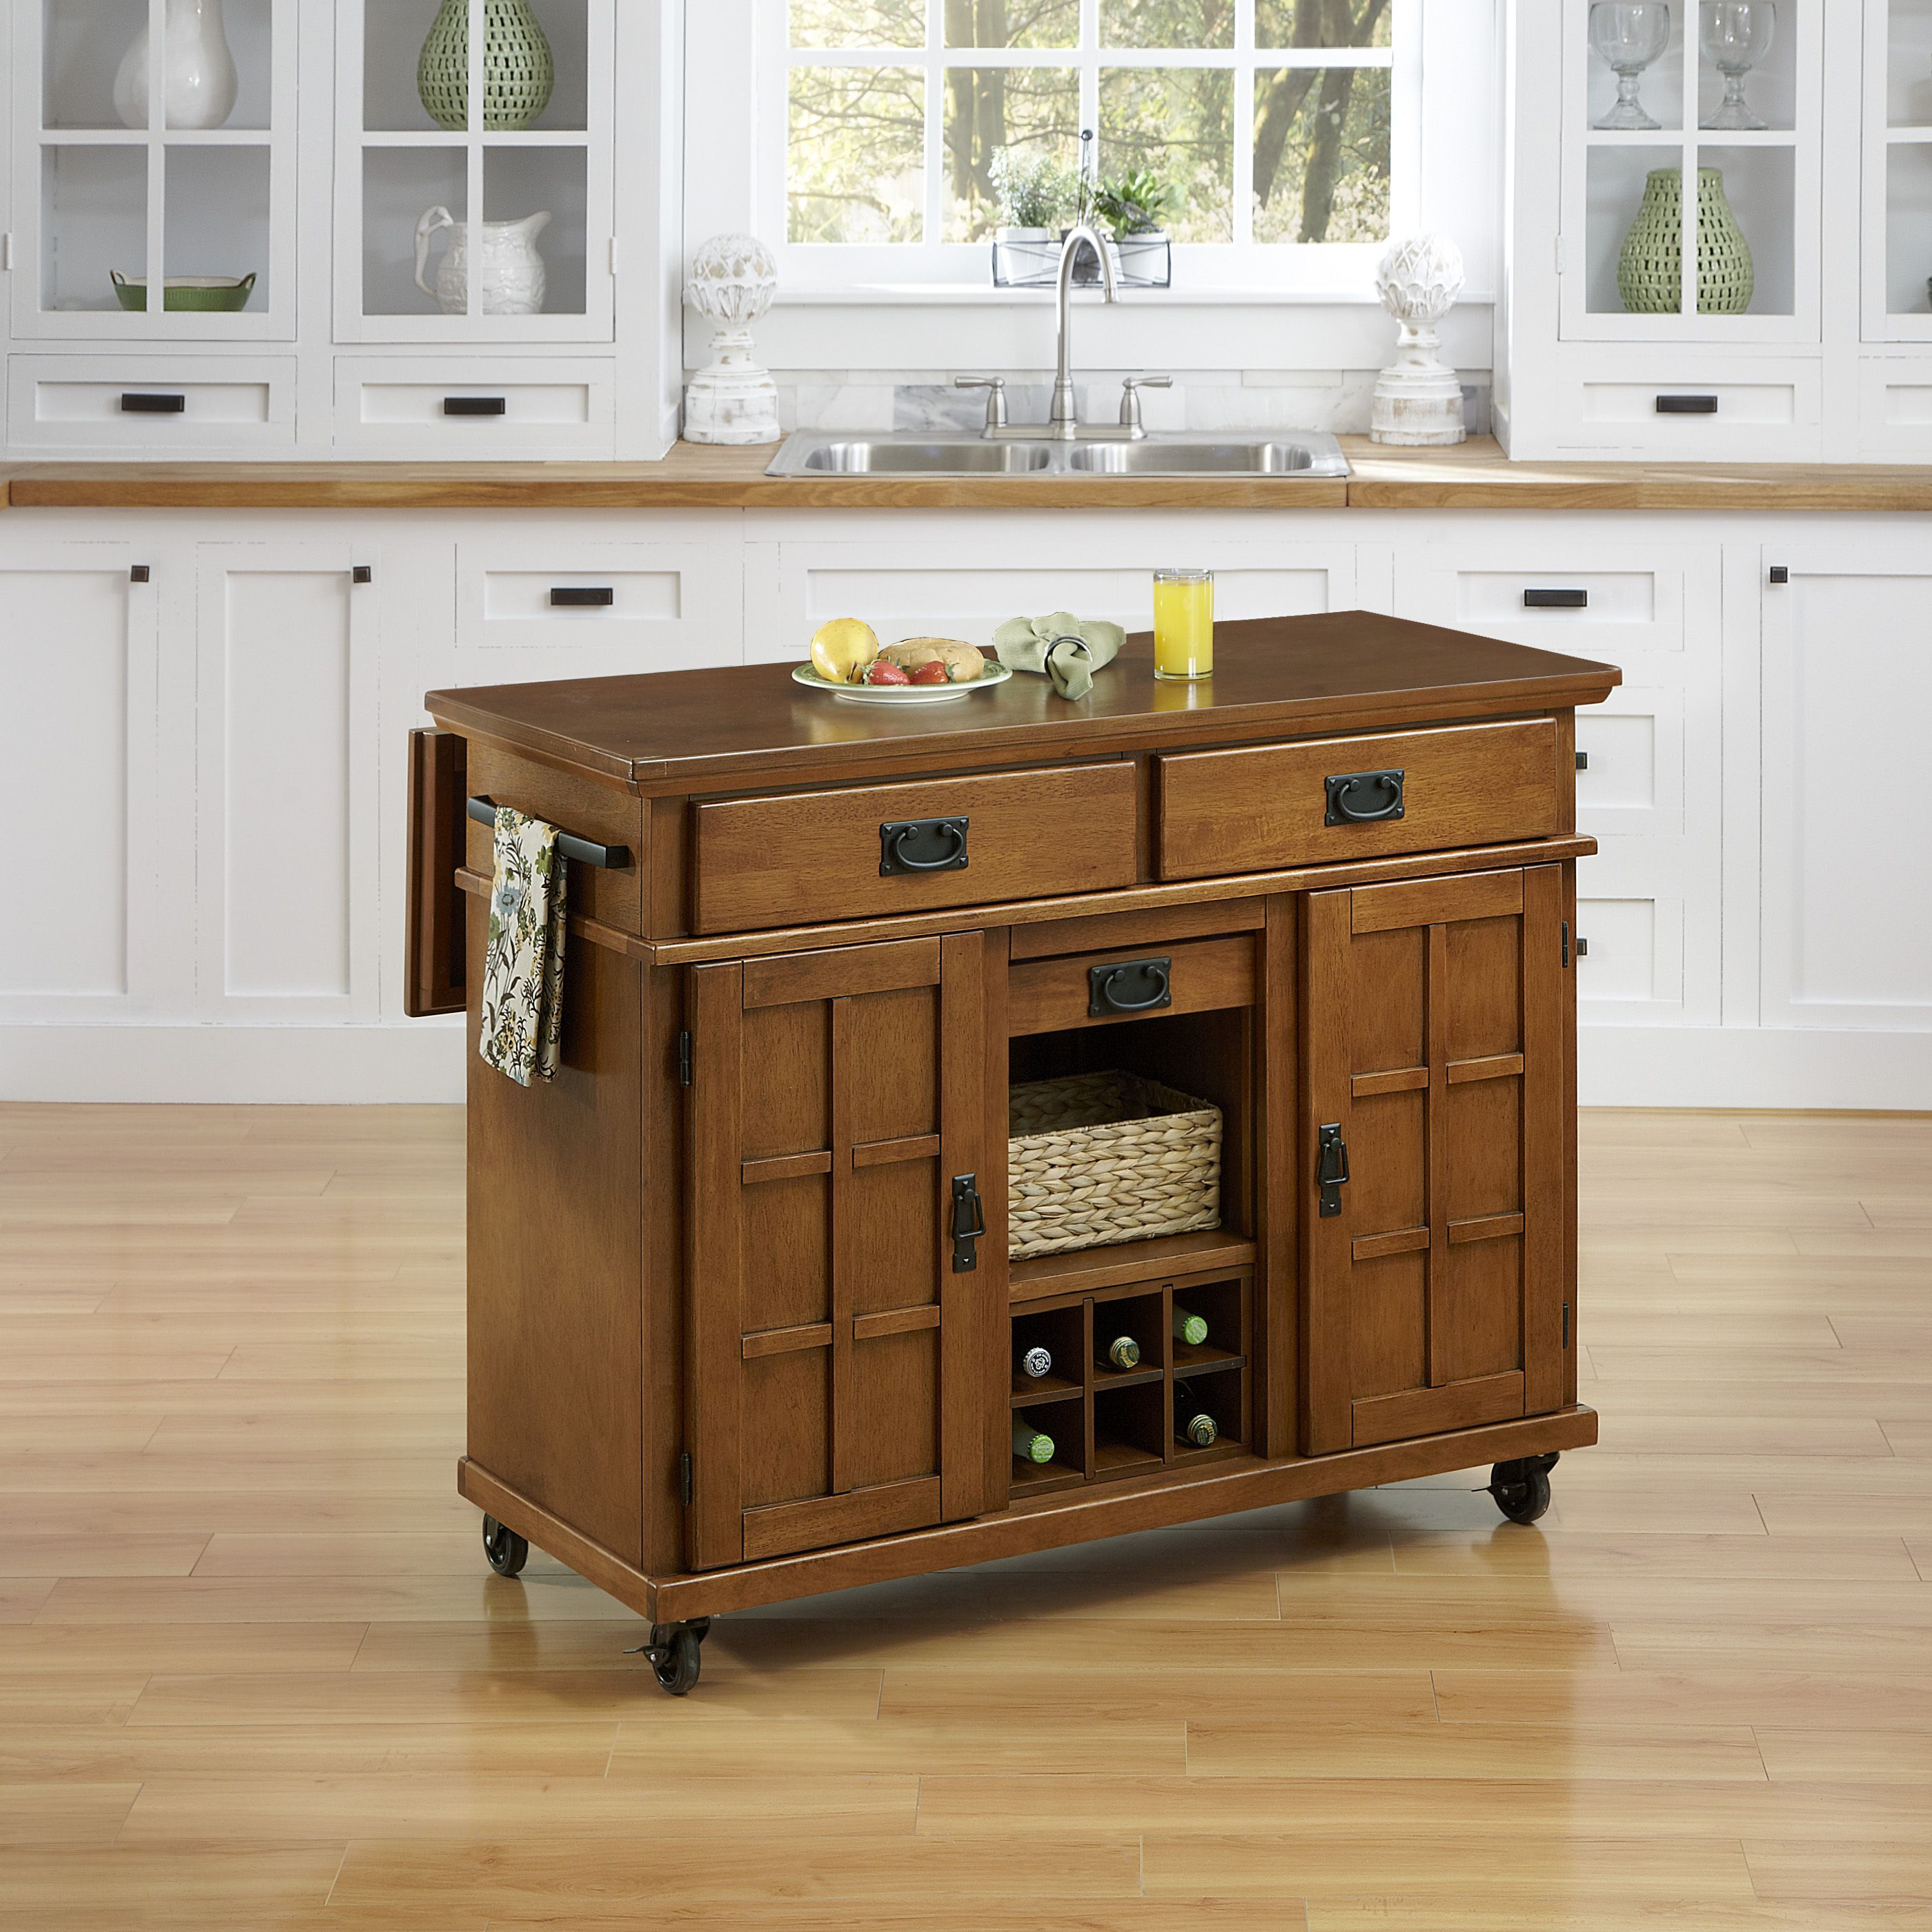 Mission styling at its best! The Arts and Crafts Kitchen Cart by ...